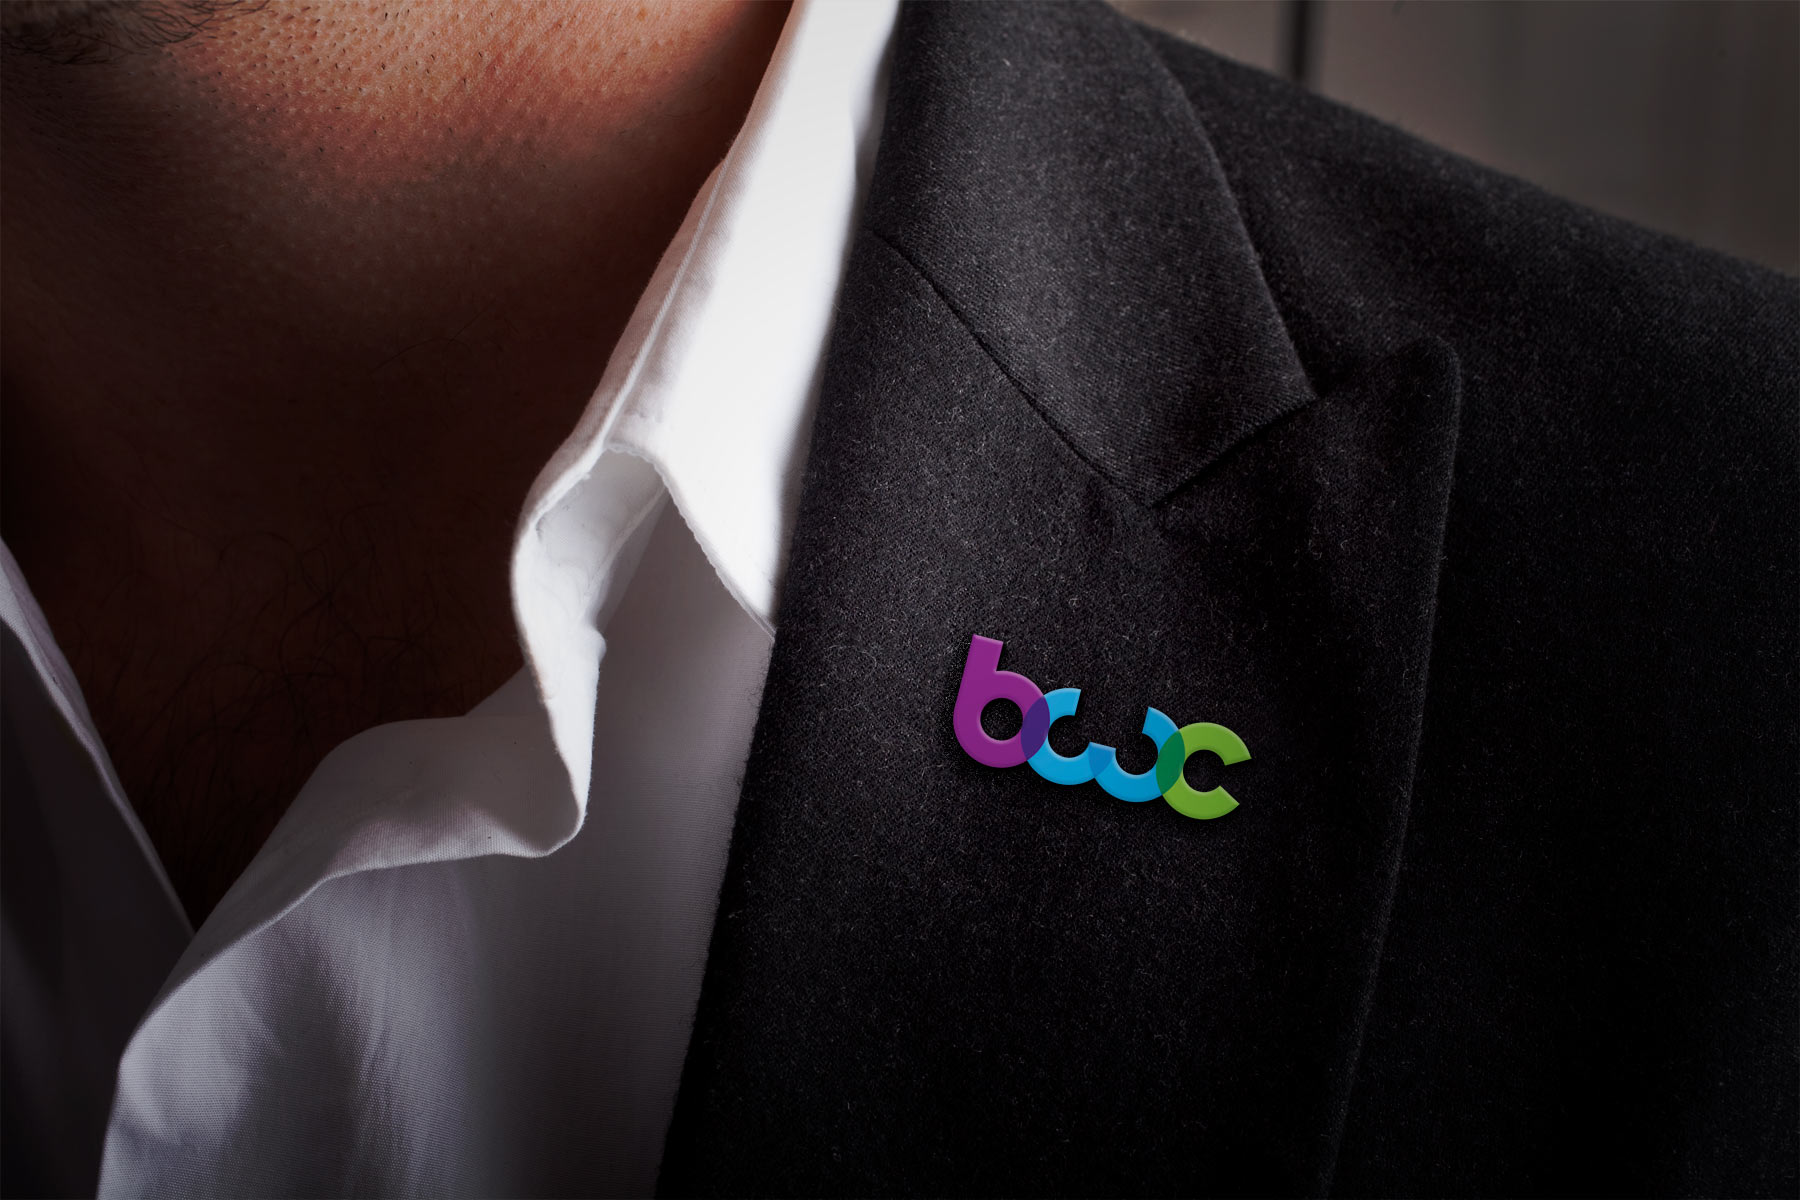 The simple, bright brand icon works well in special applications - Such as die cut materials.